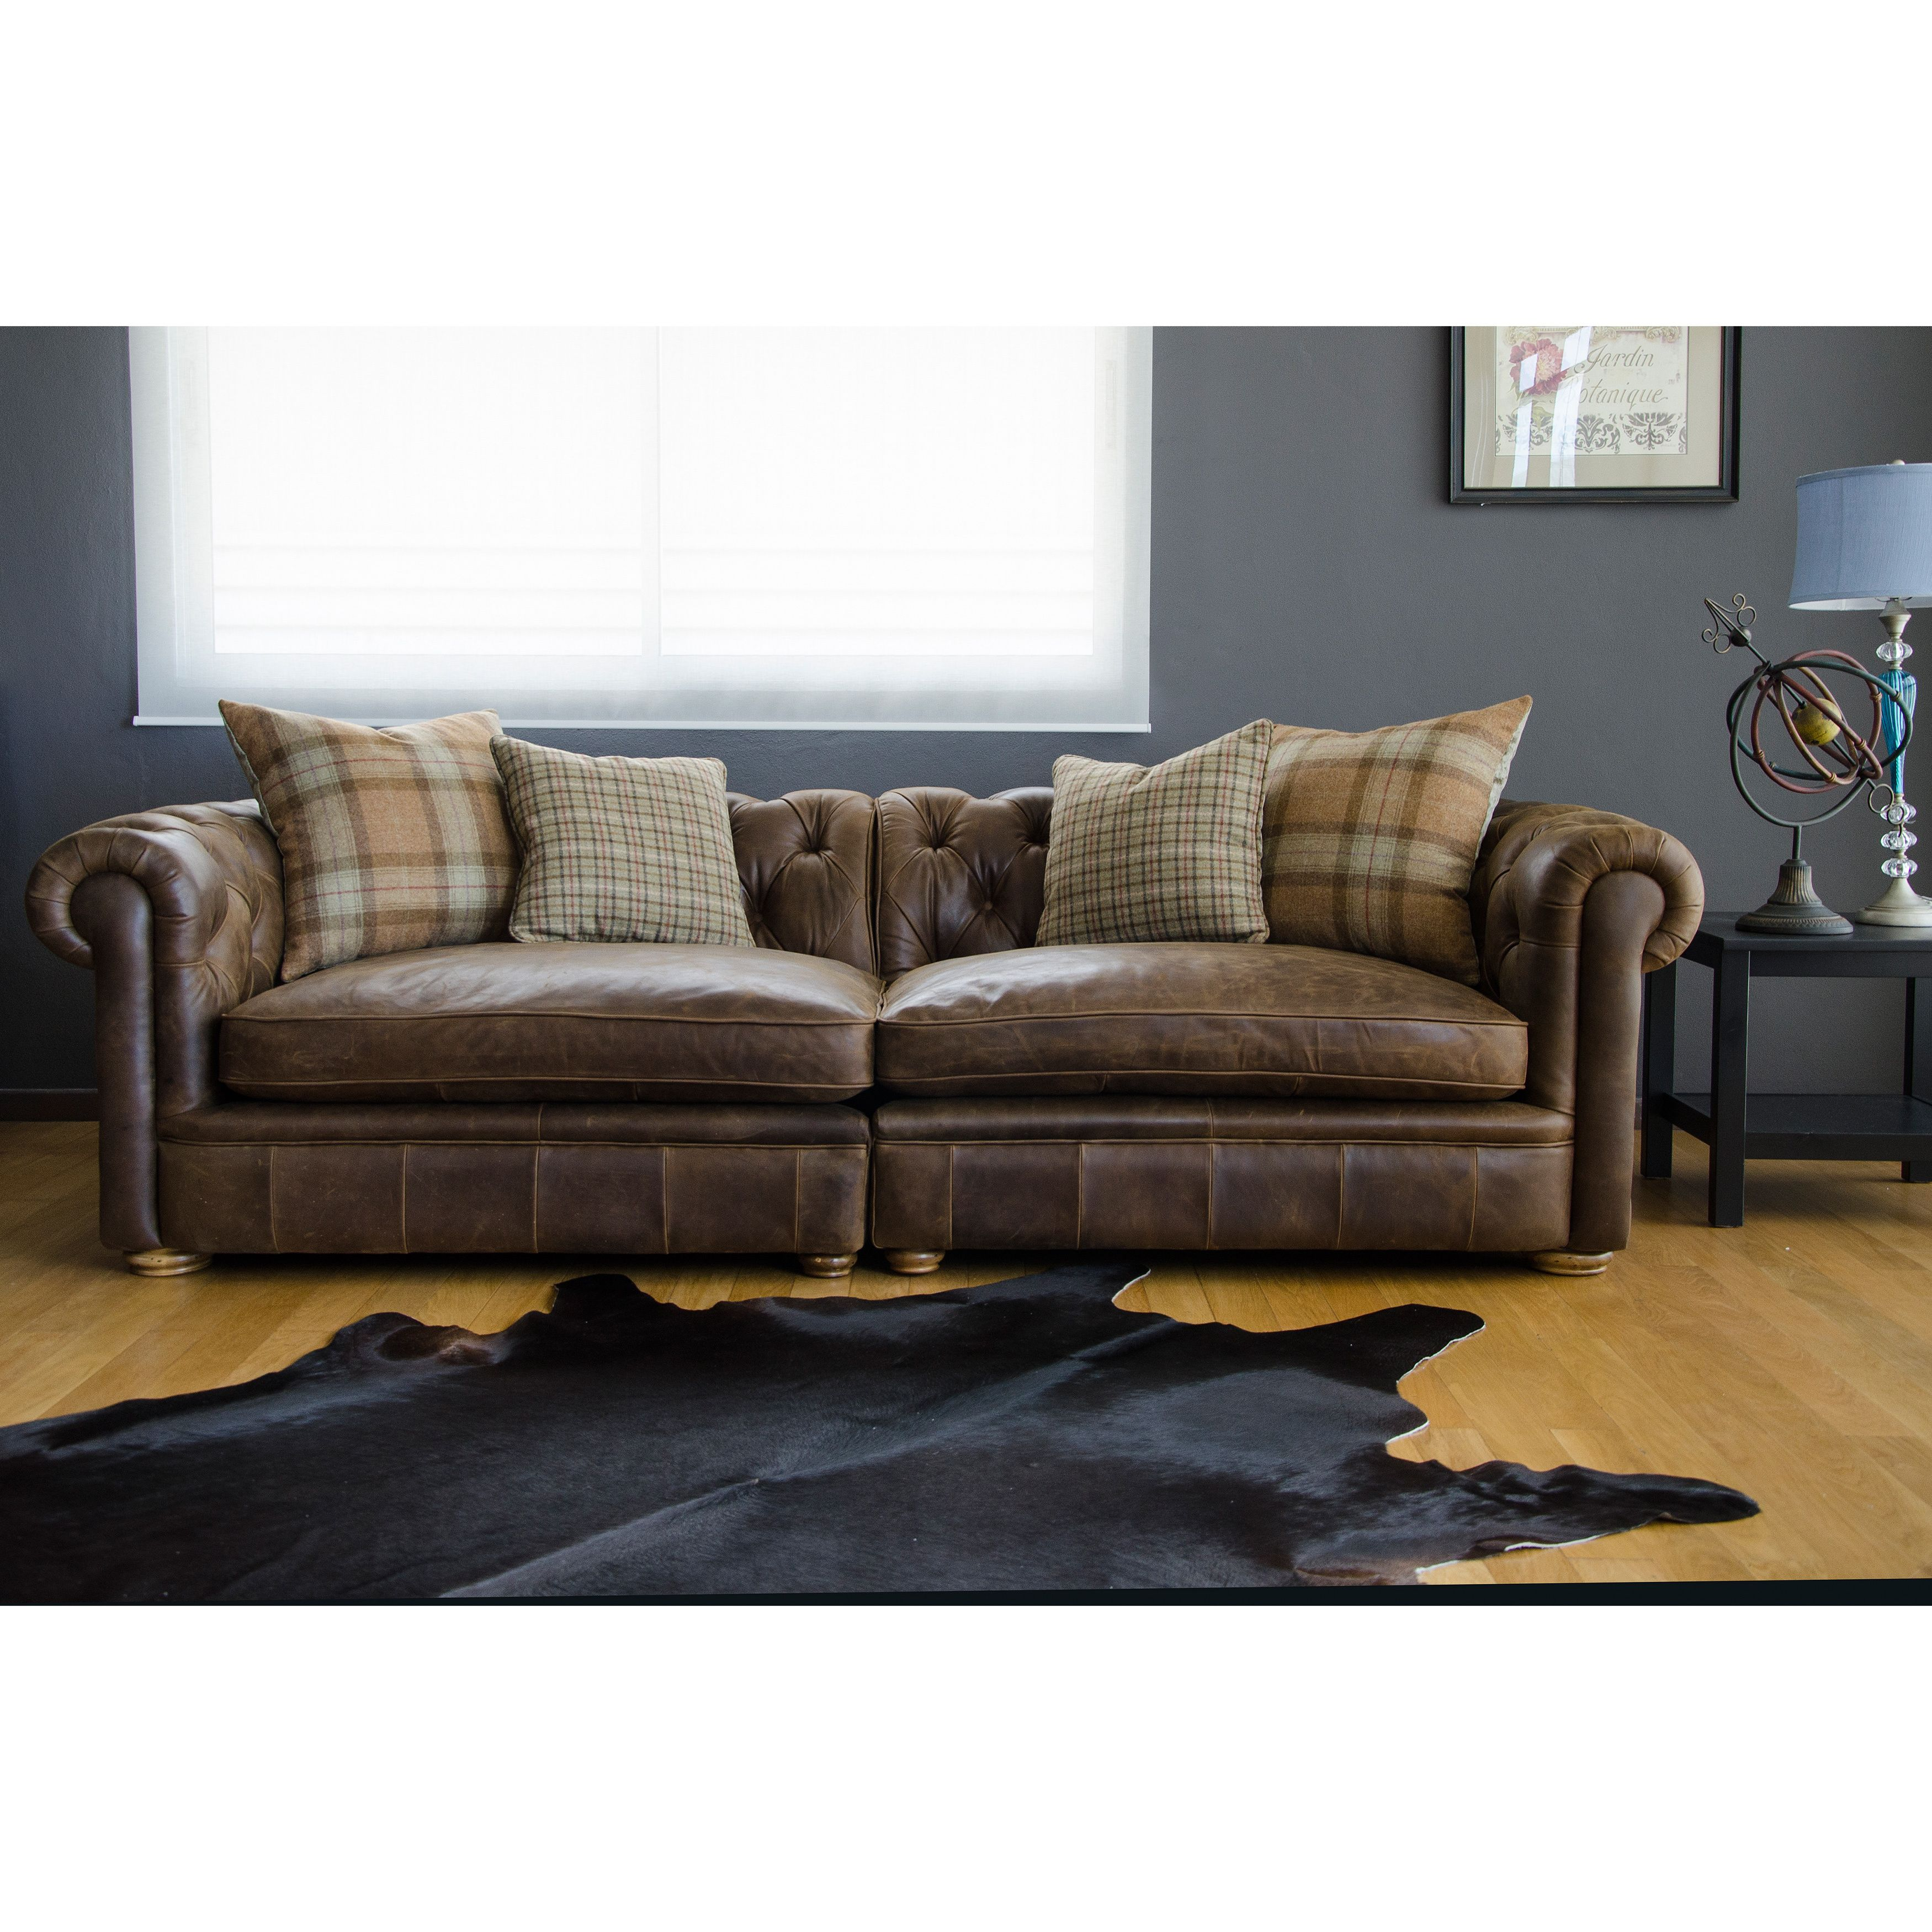 Bon This Tufted Back Grand Sofa Will Complete Your Home Decor With Warm Tones  And A Premium Kiln Dried Hardwood Frame.